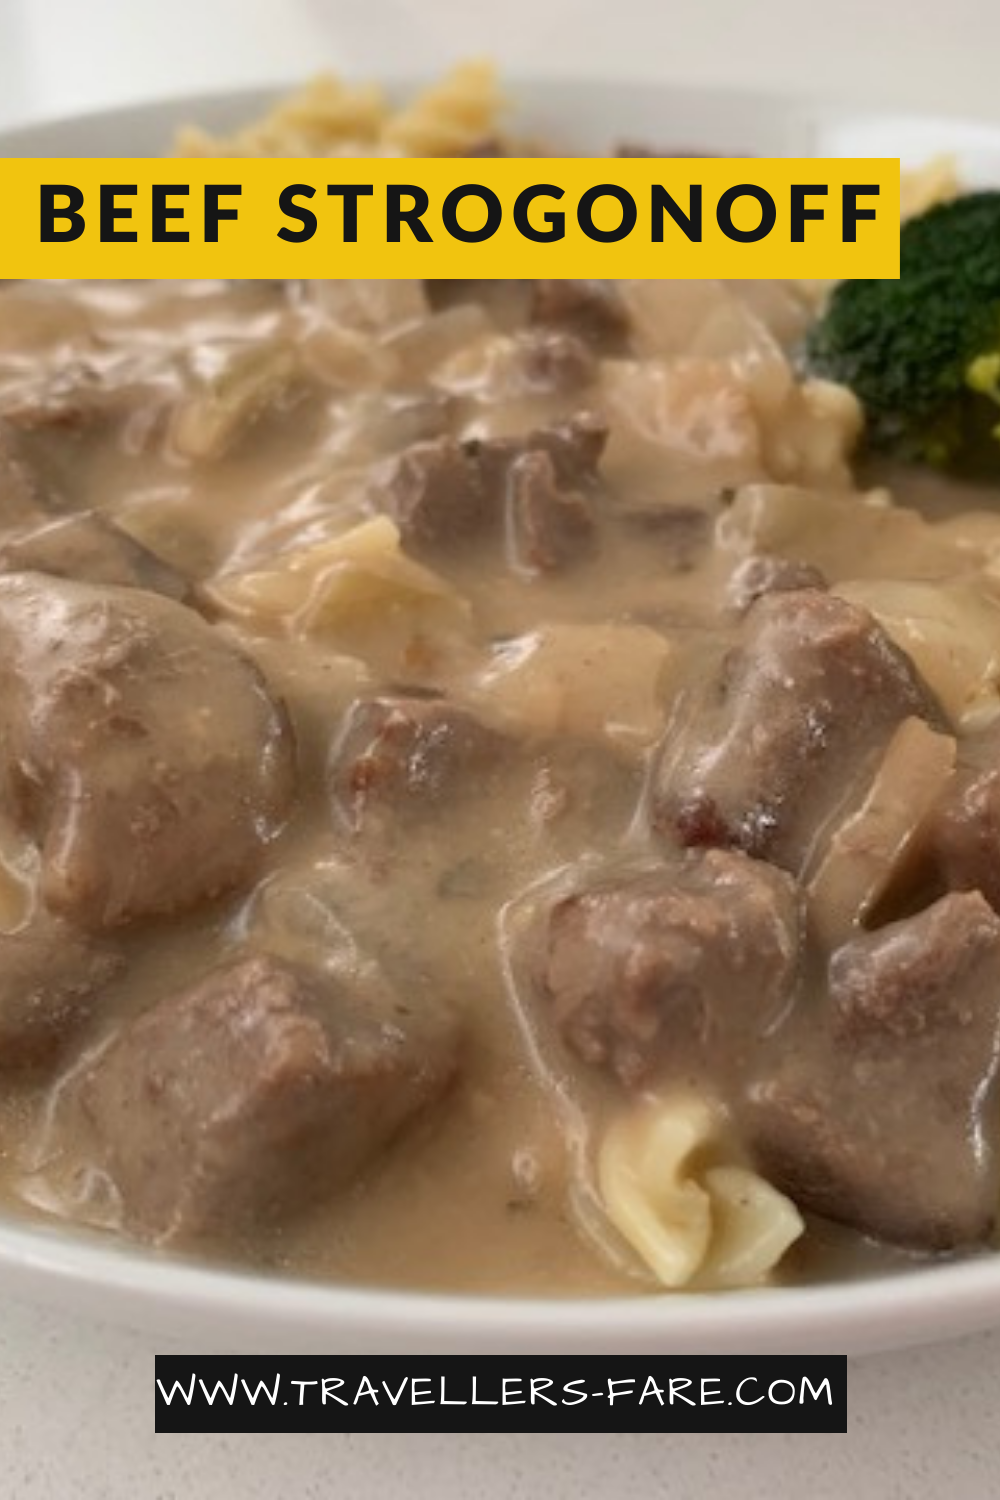 Beef Stroganoff Made From A Good Cut Of Beef Then Sautéed In Butter With Onion, Mushrooms, Paprika And Finally Sour Cream. Served on Rice Or Pasta.